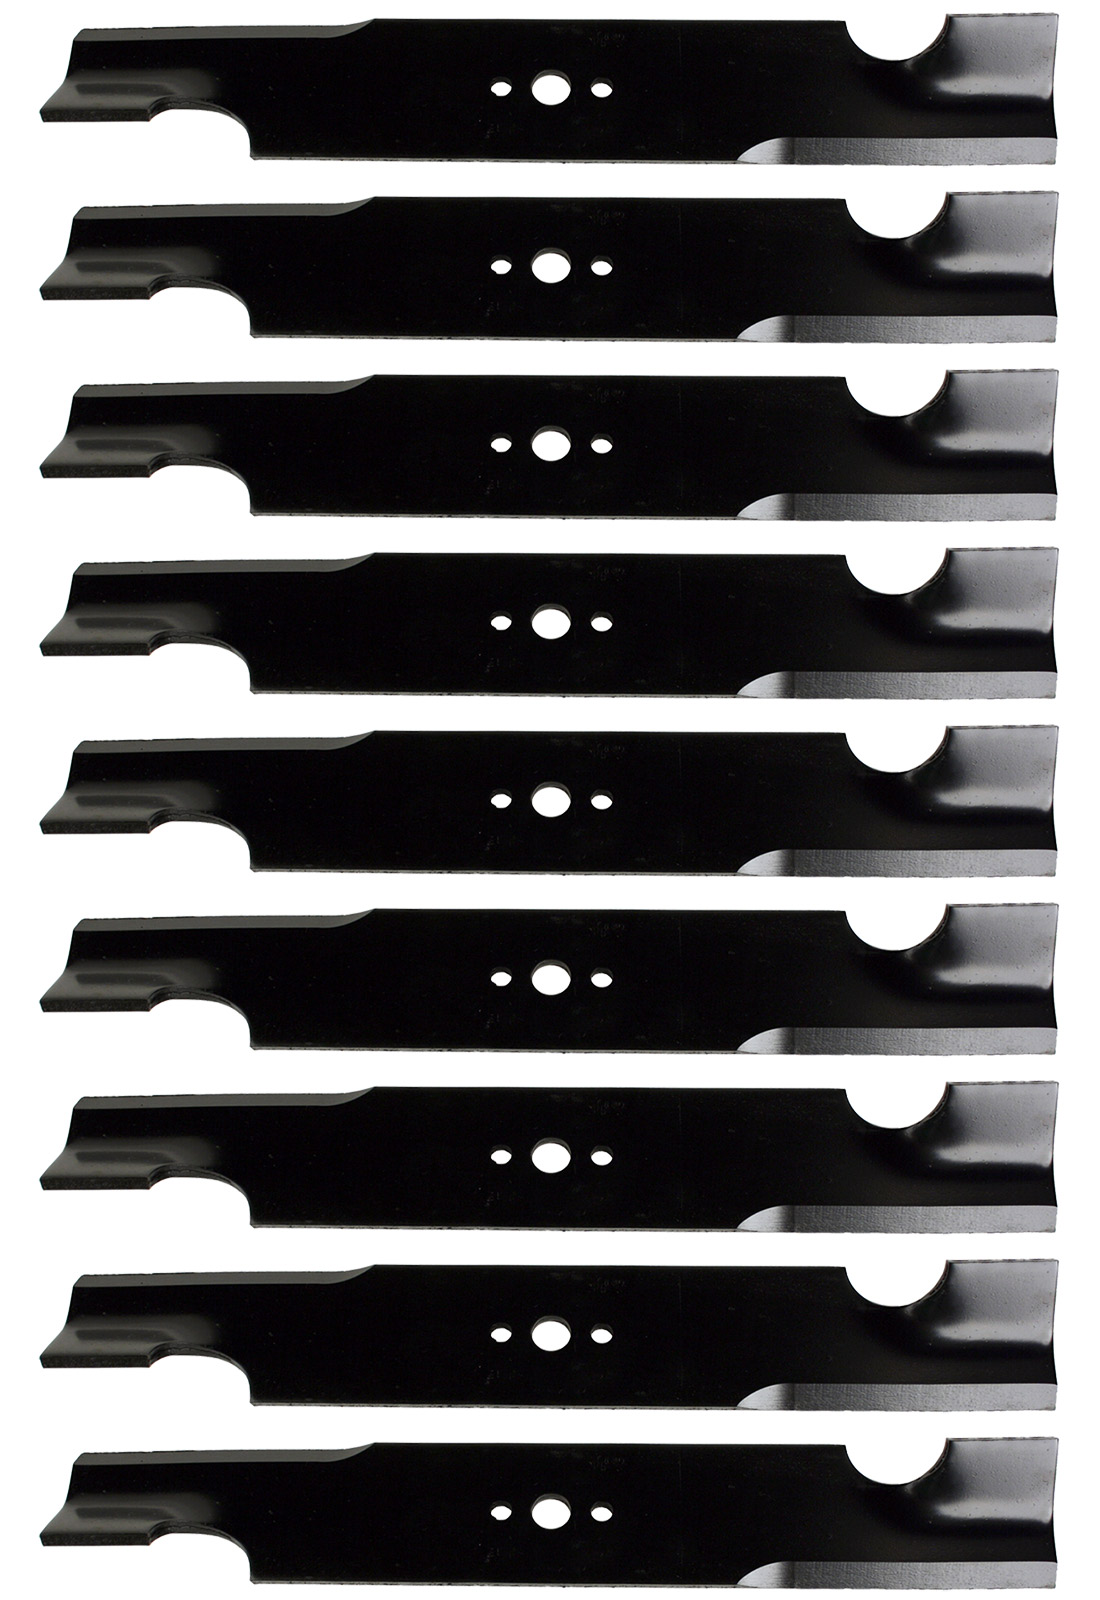 Details about 9 USA Mower Blades® for Ferris® 1520843 1520843S 20843  5020843 32